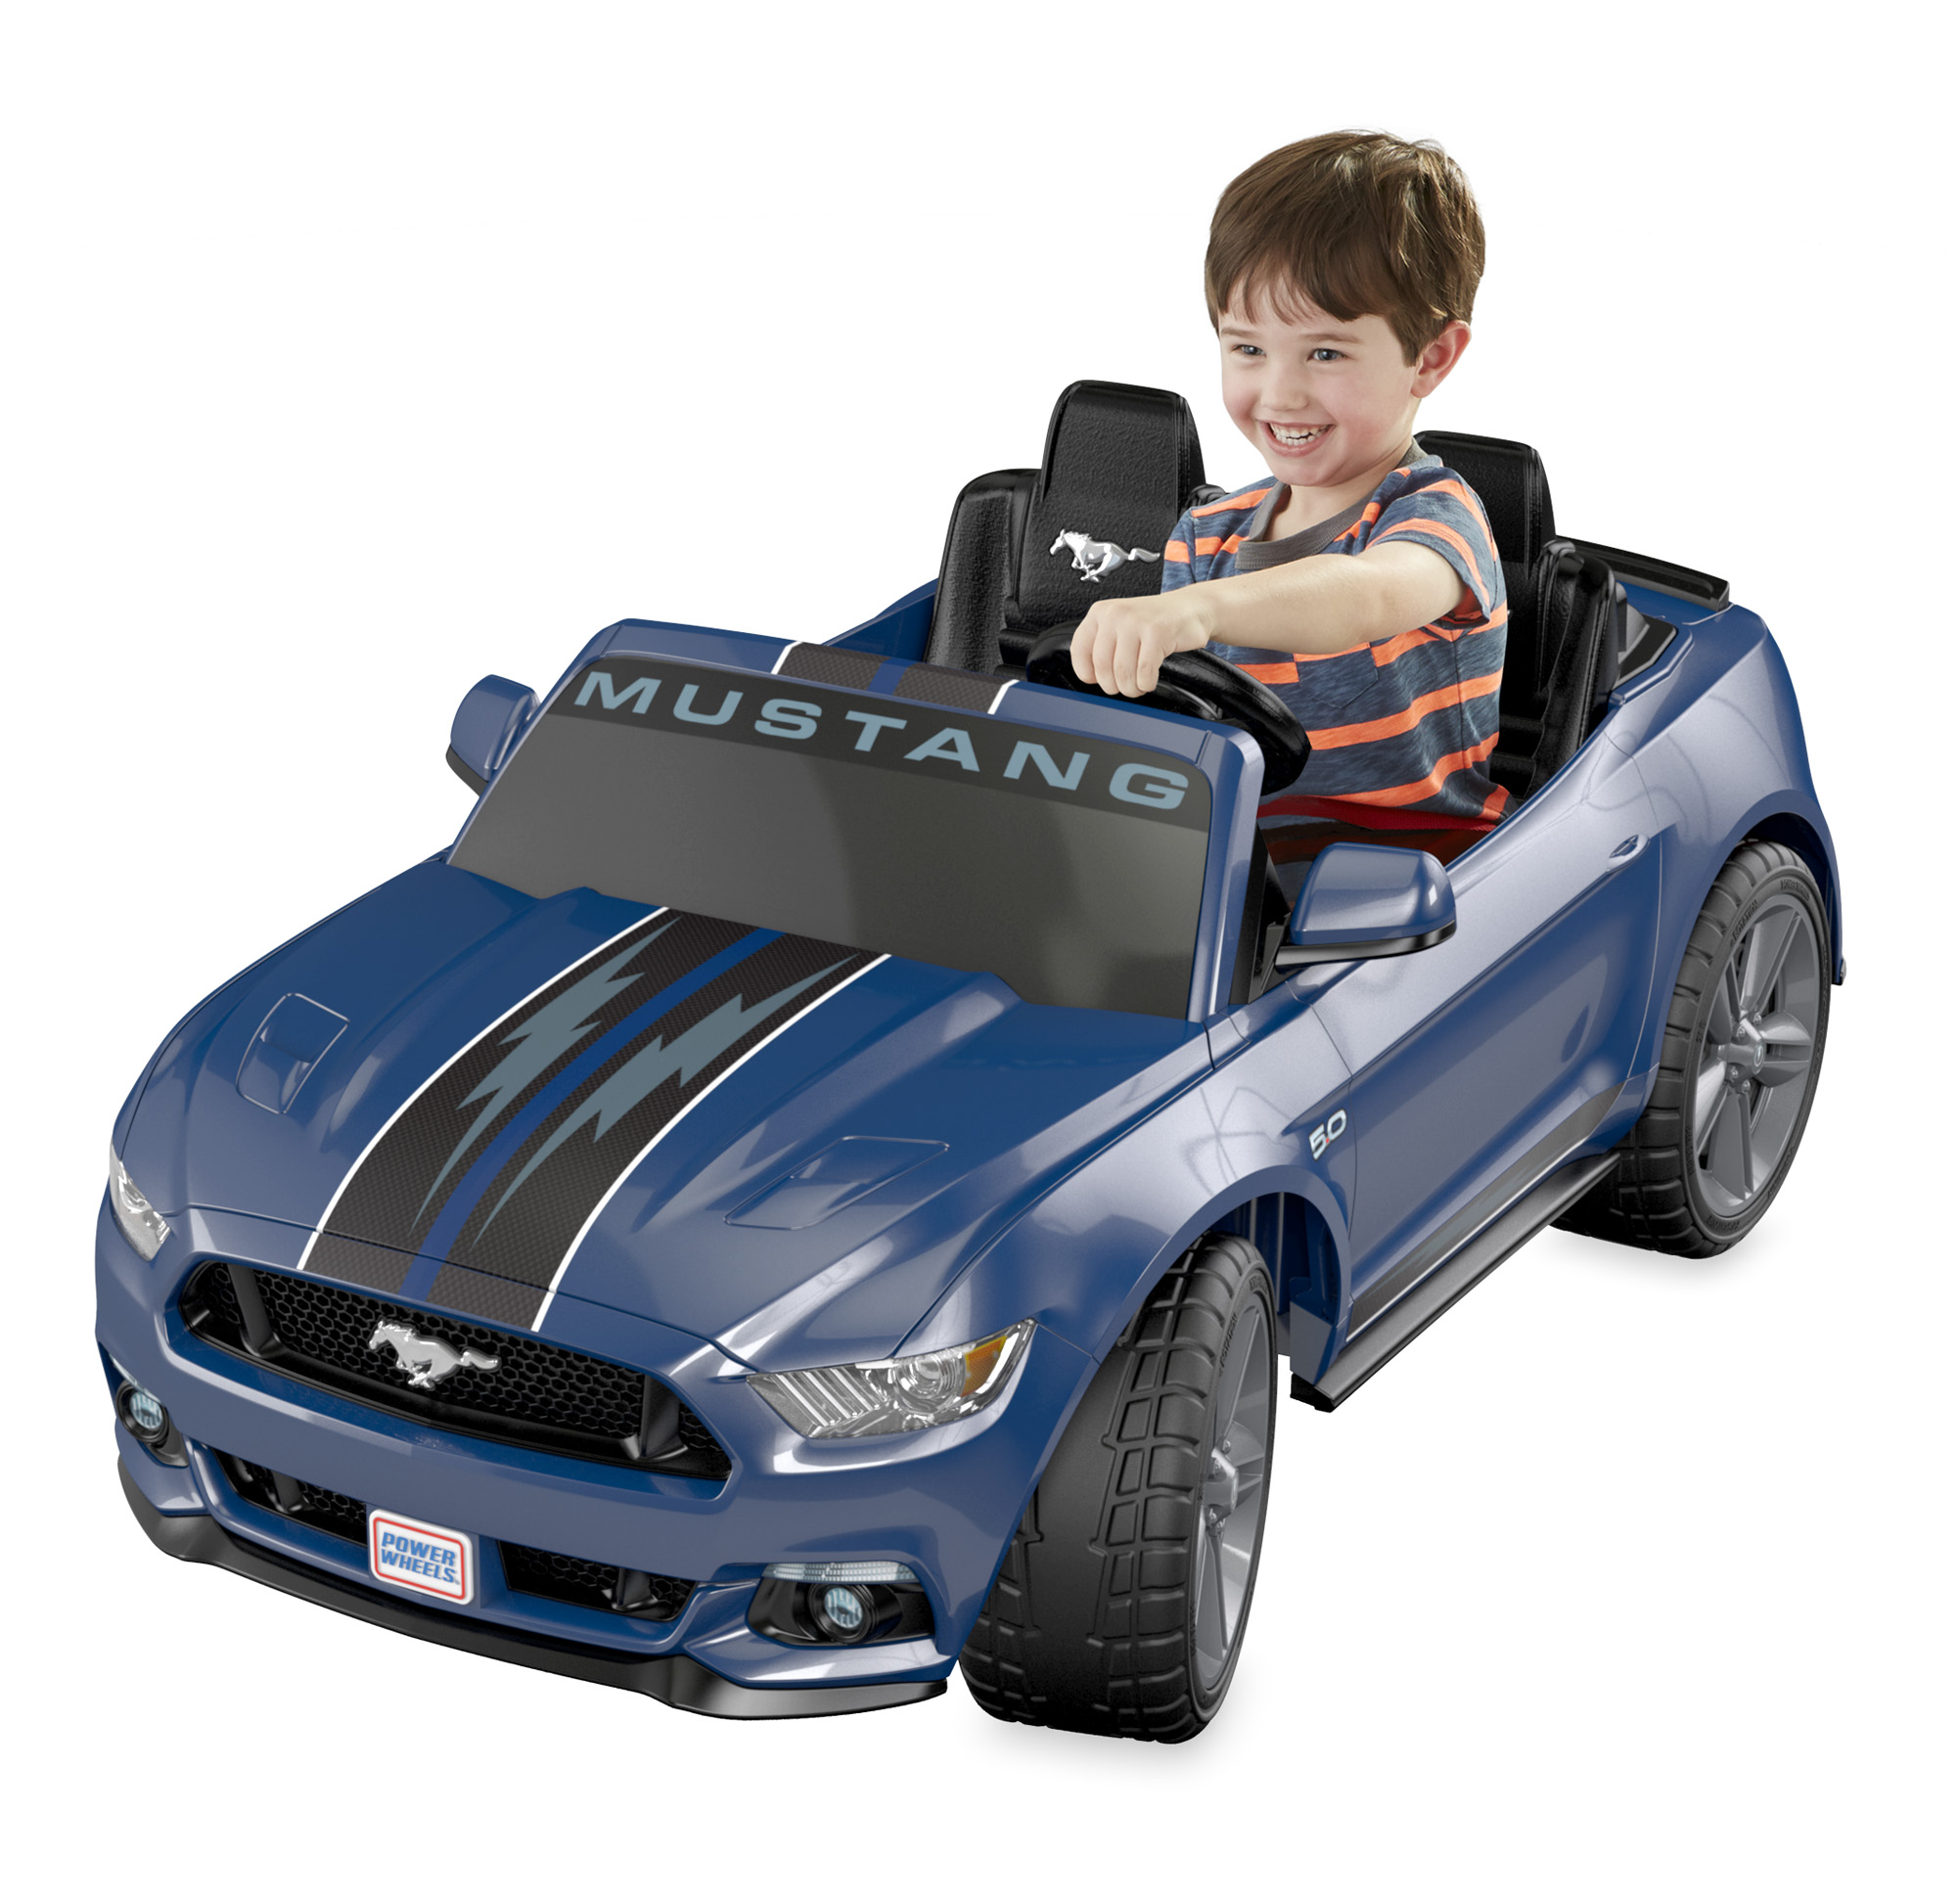 Power Wheels Smart Drive Ford Mustang Ride-On Vehicle